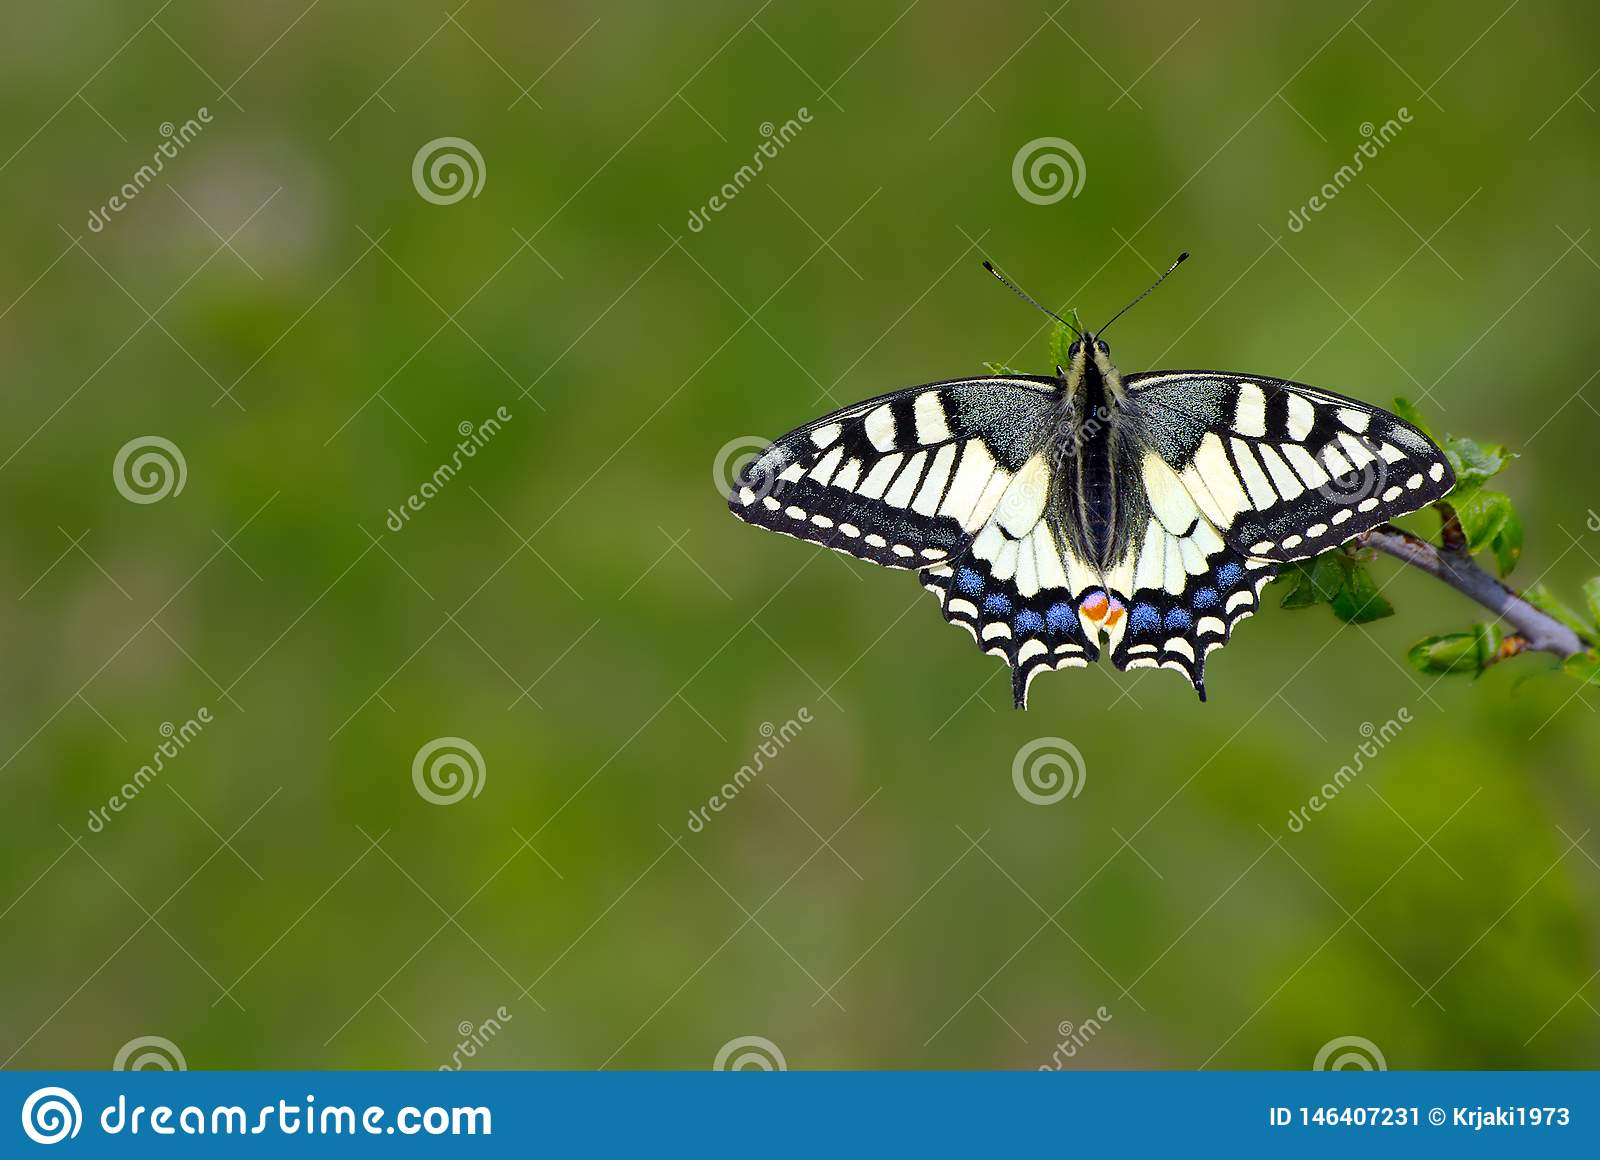 Bright butterfly machaon in the meadow. butterfly sitting on a branch. close up copy spaces.